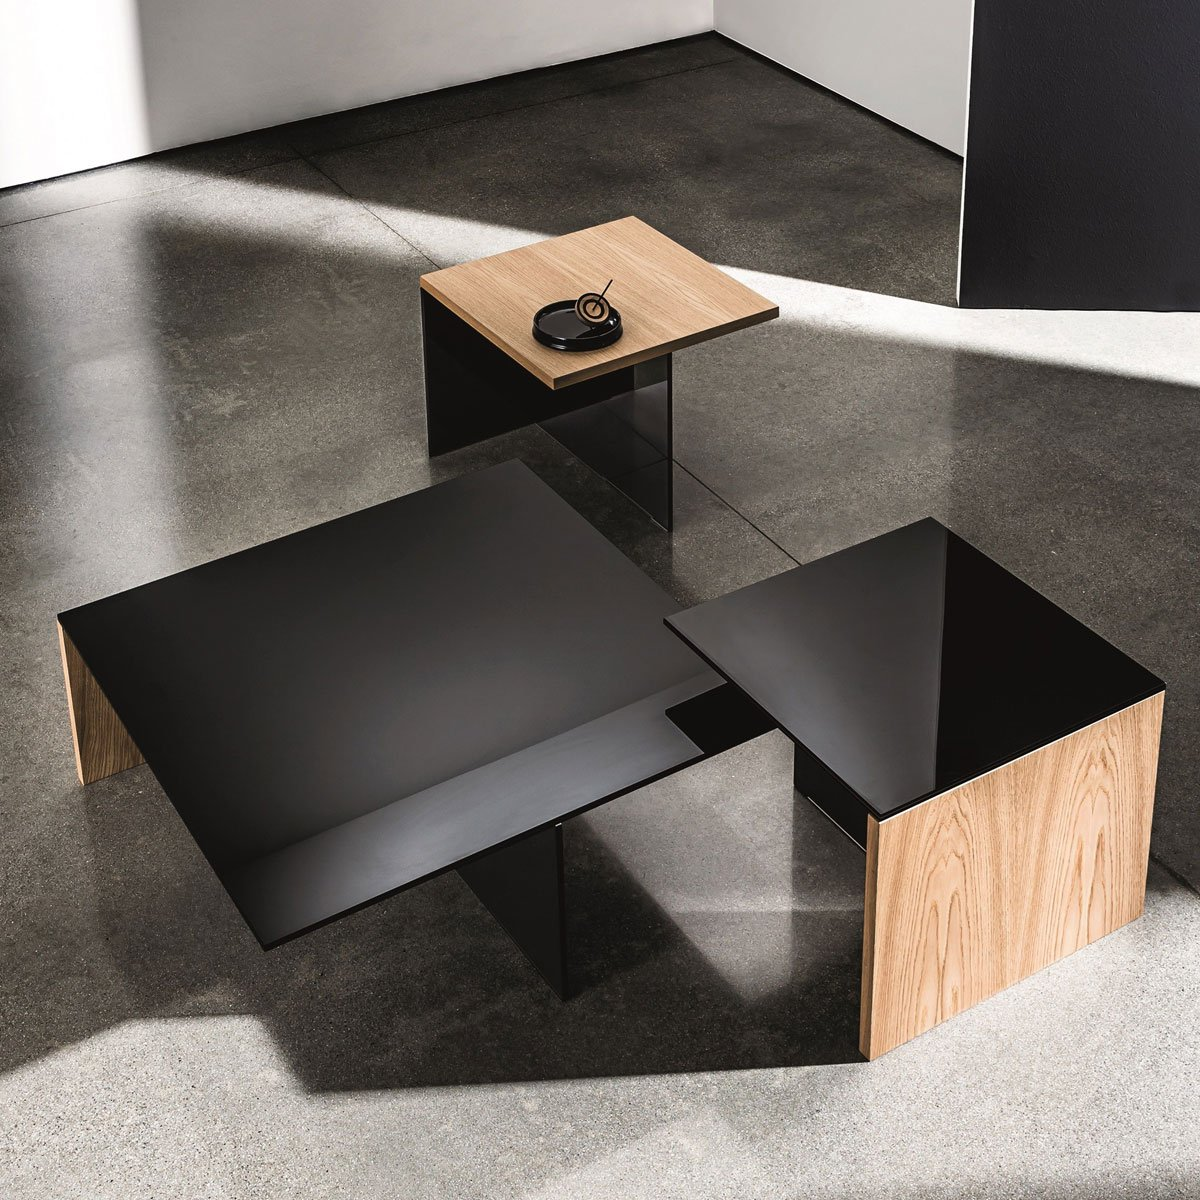 Jerome S Square Coffee Table: Regolo Square Glass And Wood Coffee Table